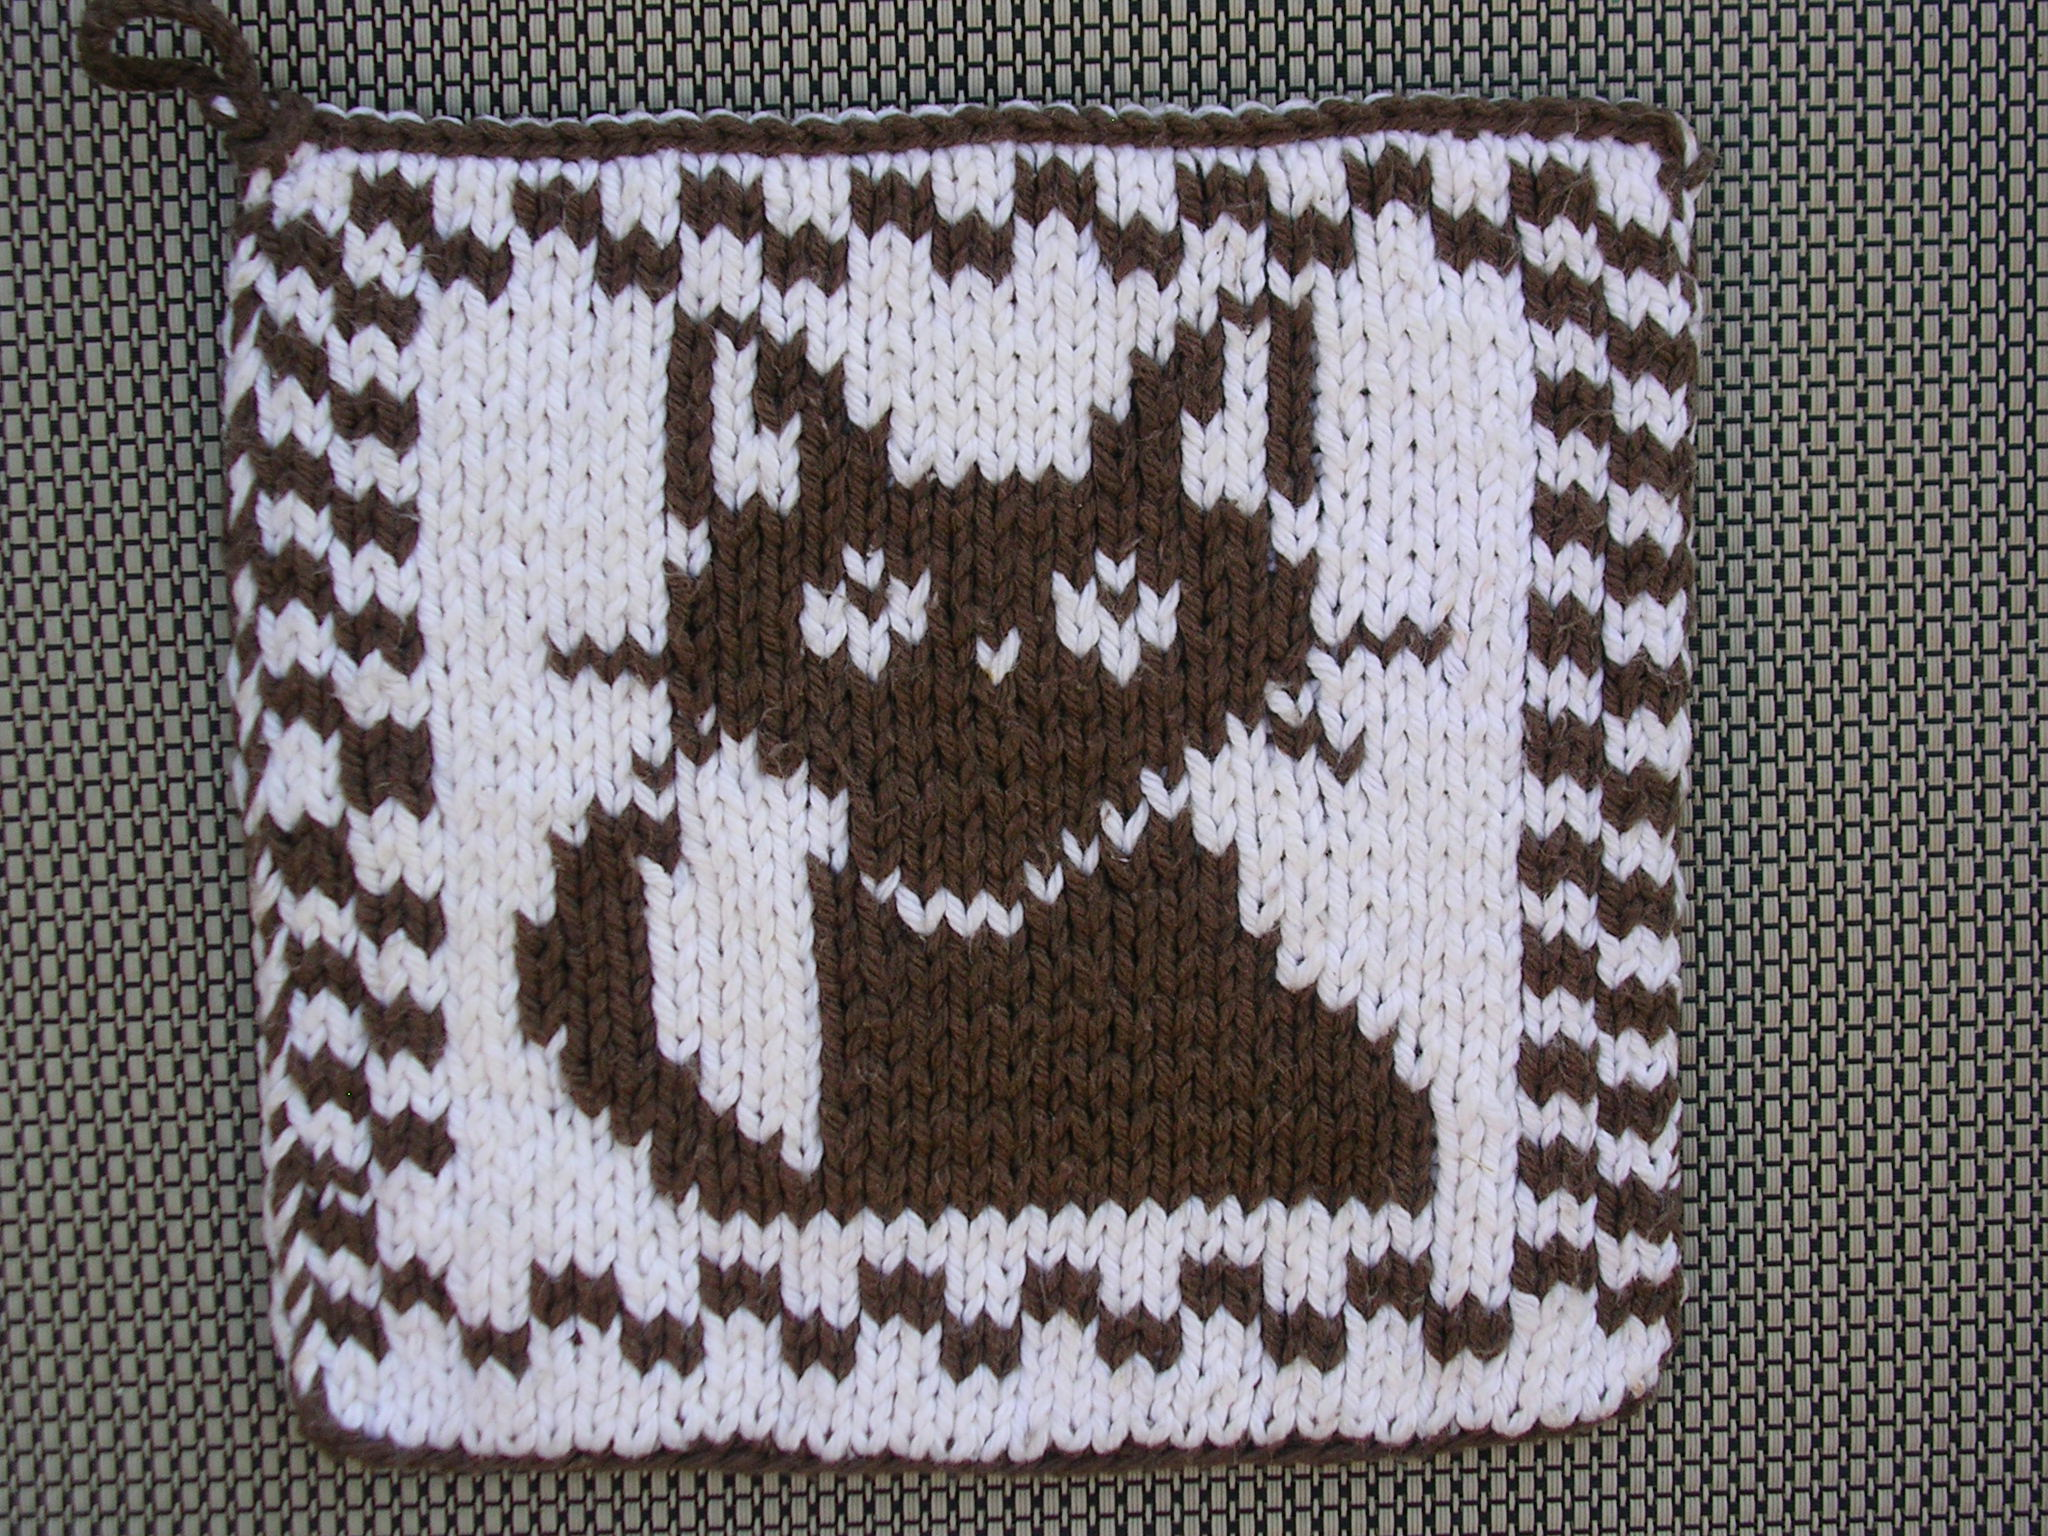 Cat Pot Holder double knit sg-creations